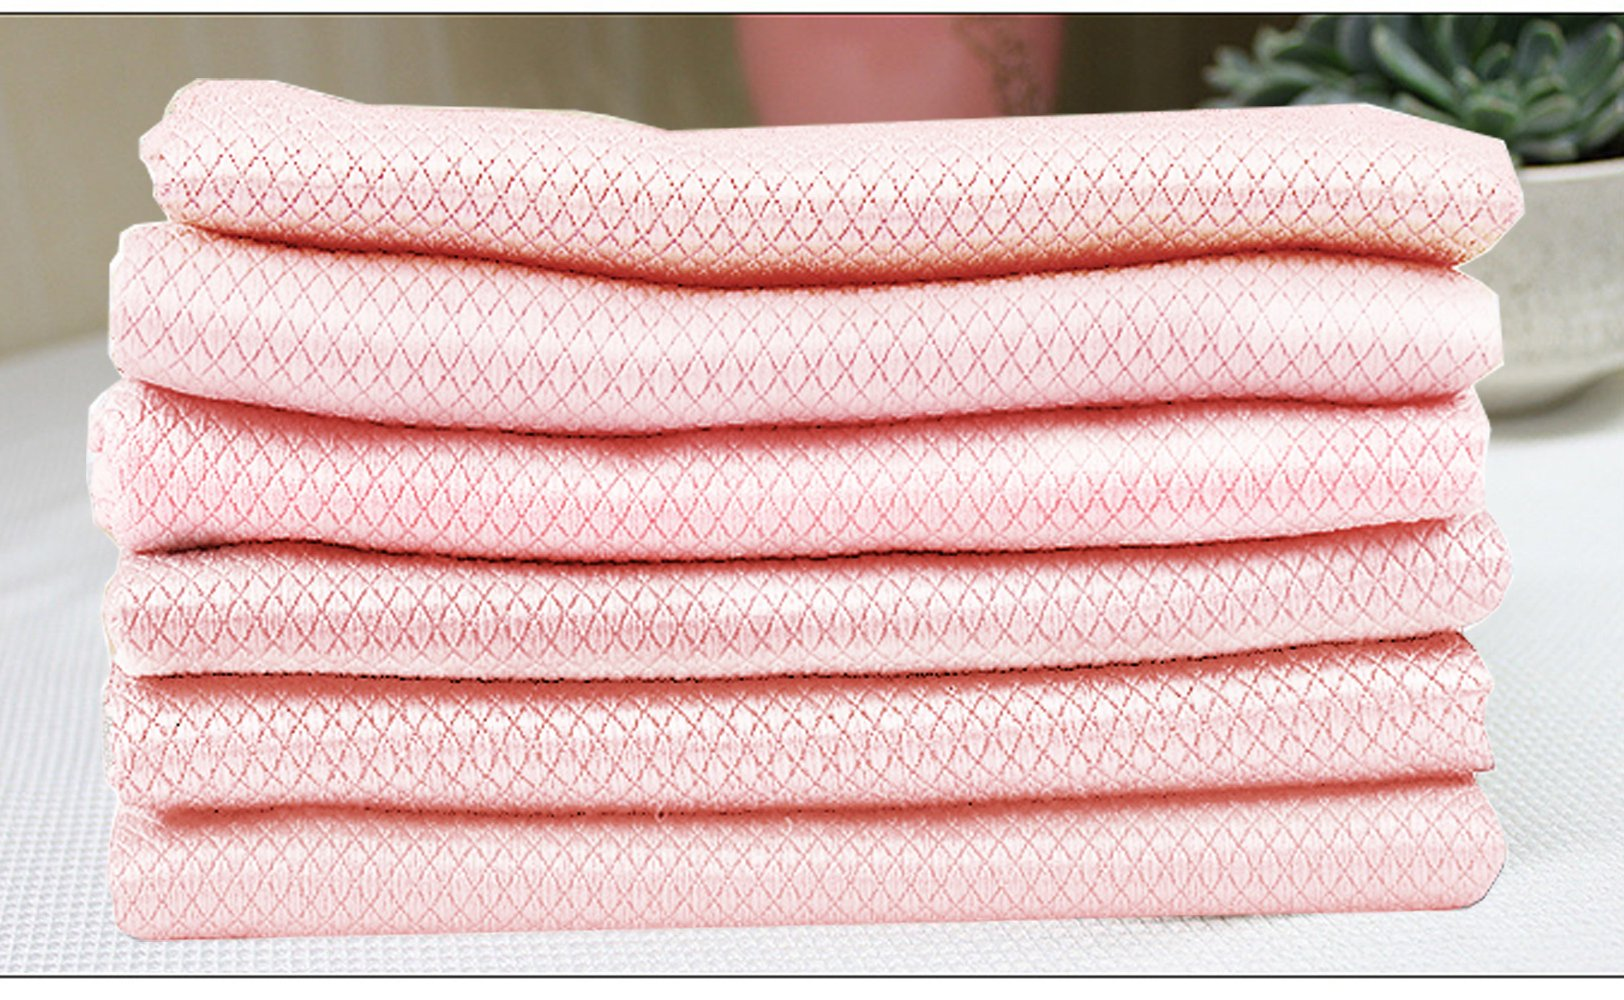 12 Pack 12''x16'' Pink Microfiber Cleaning Cloths Ultra Soft Super Absorbent Dust/Polishing/Dish Cloths For Cleaning TV or Computer Screems/Glasses/Kitchens/Automotive/Electronics